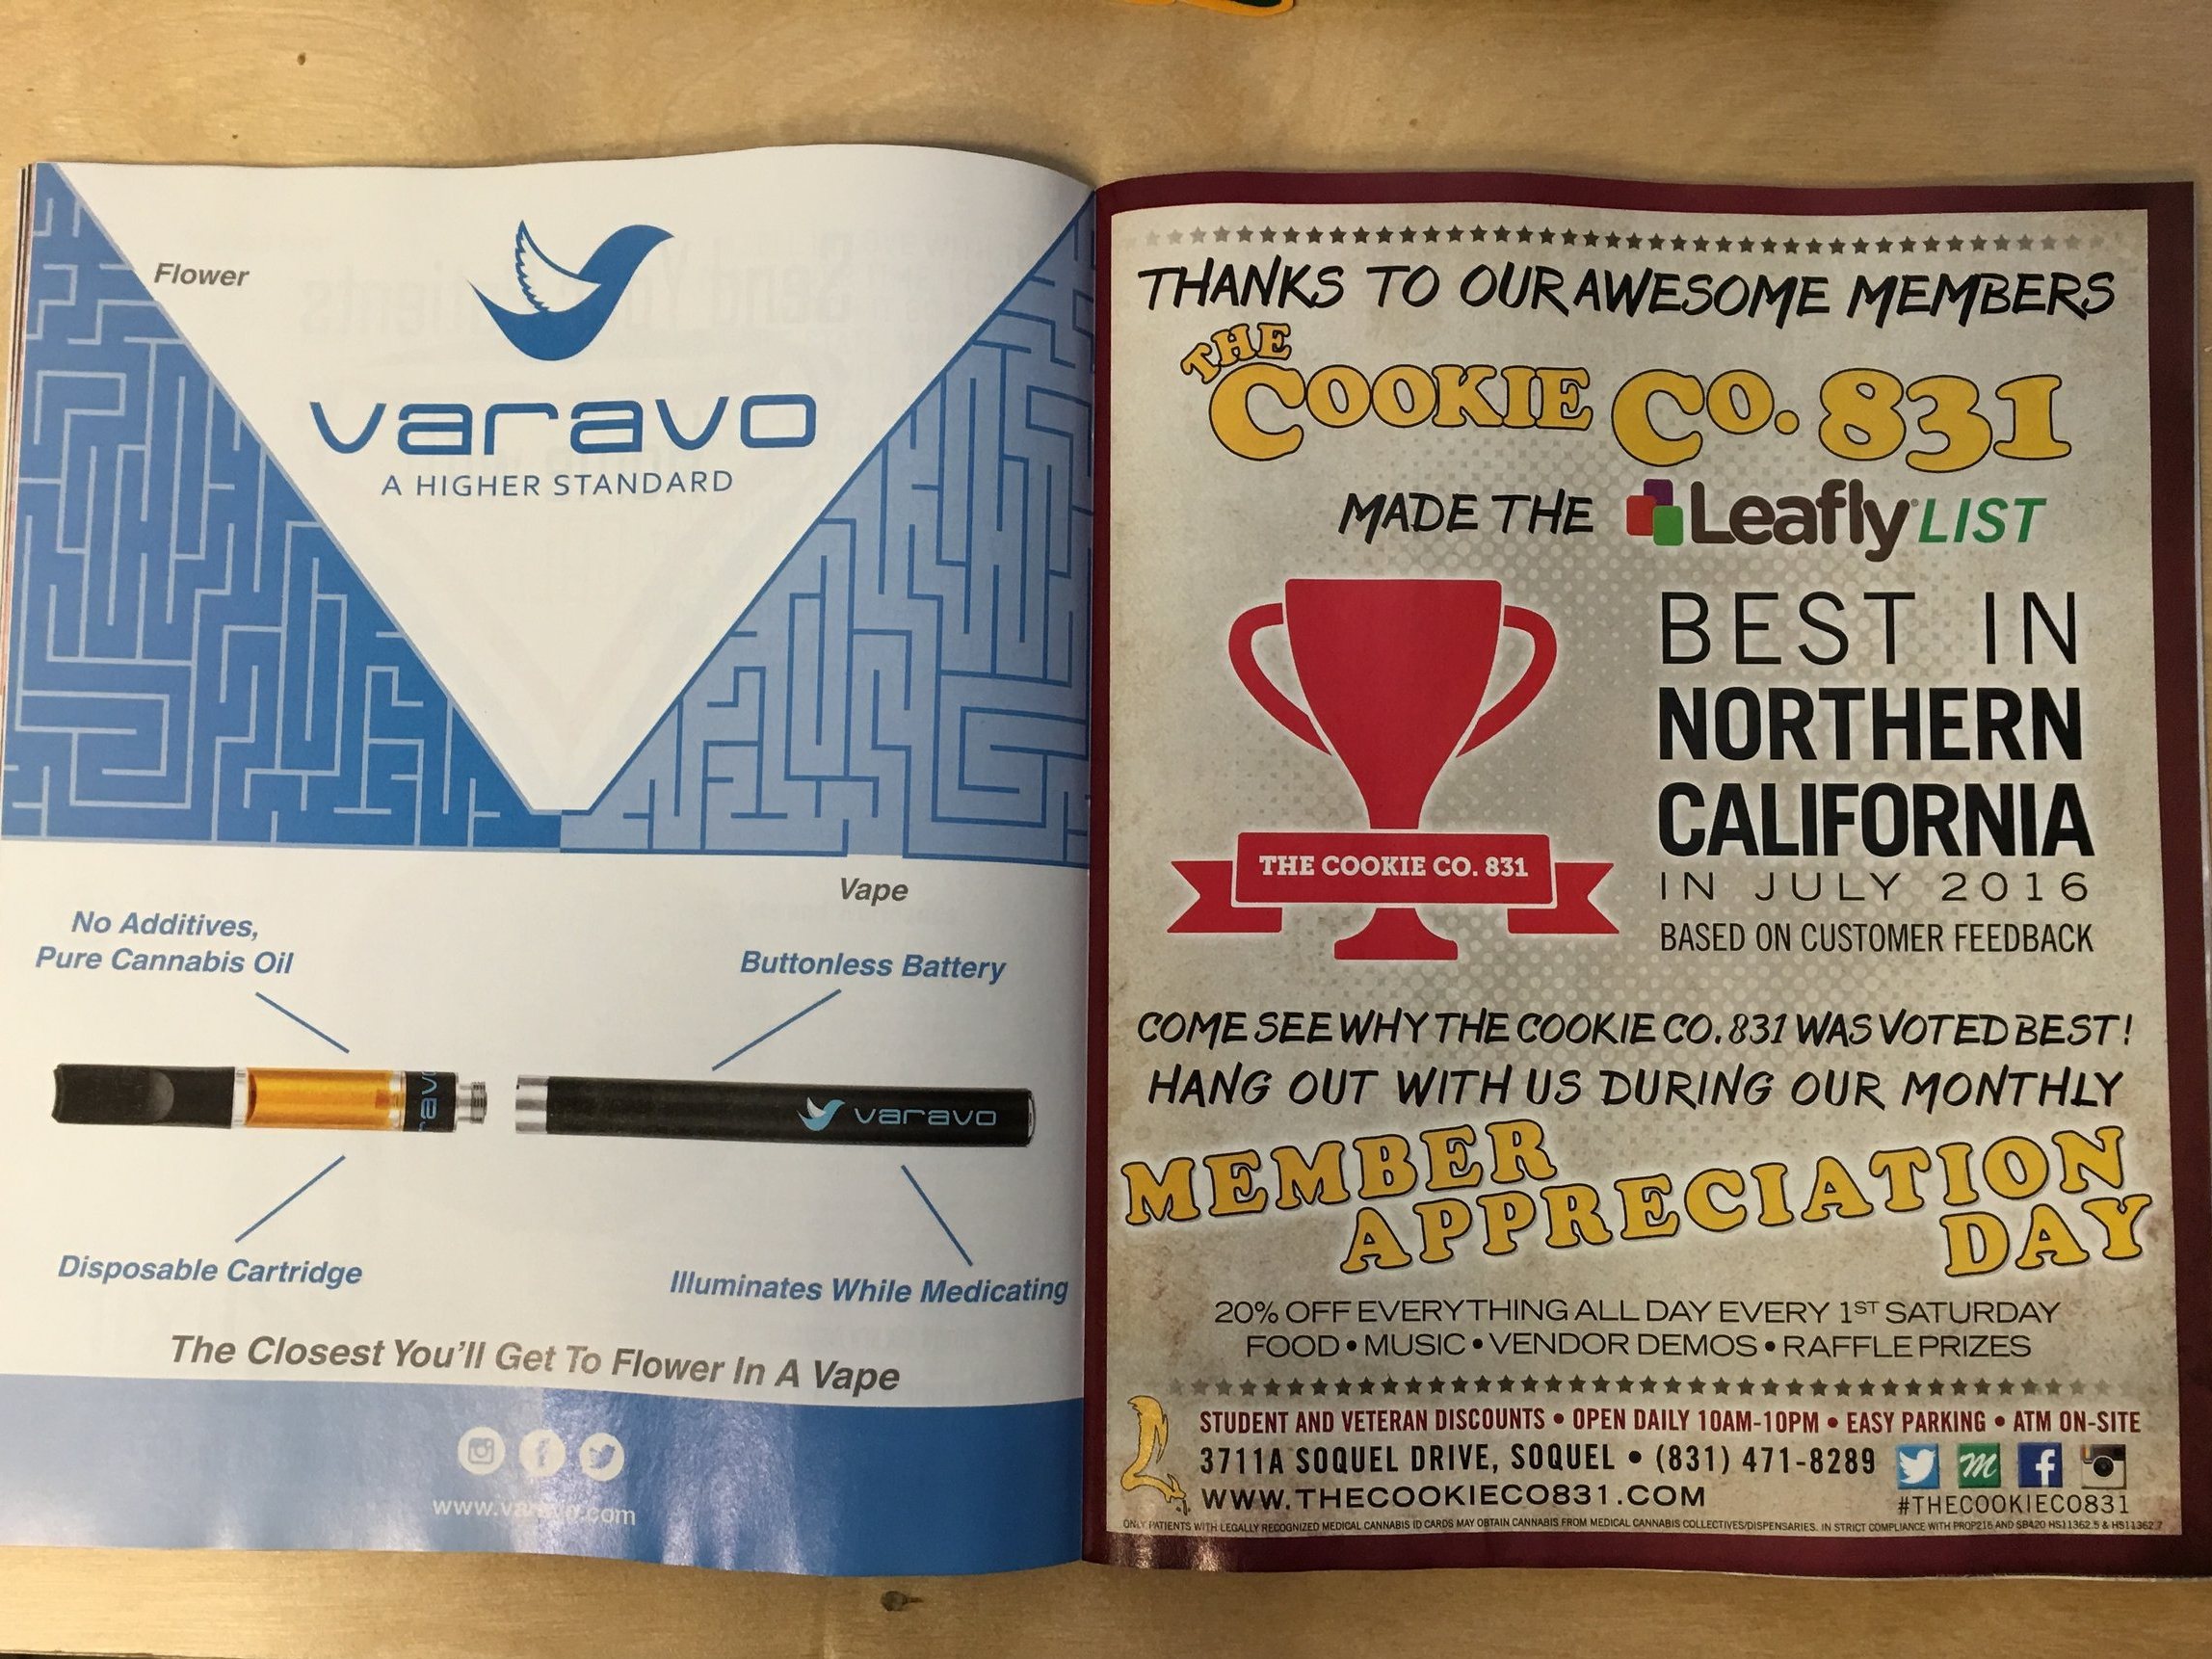 September 2016 Issue Ad (right)